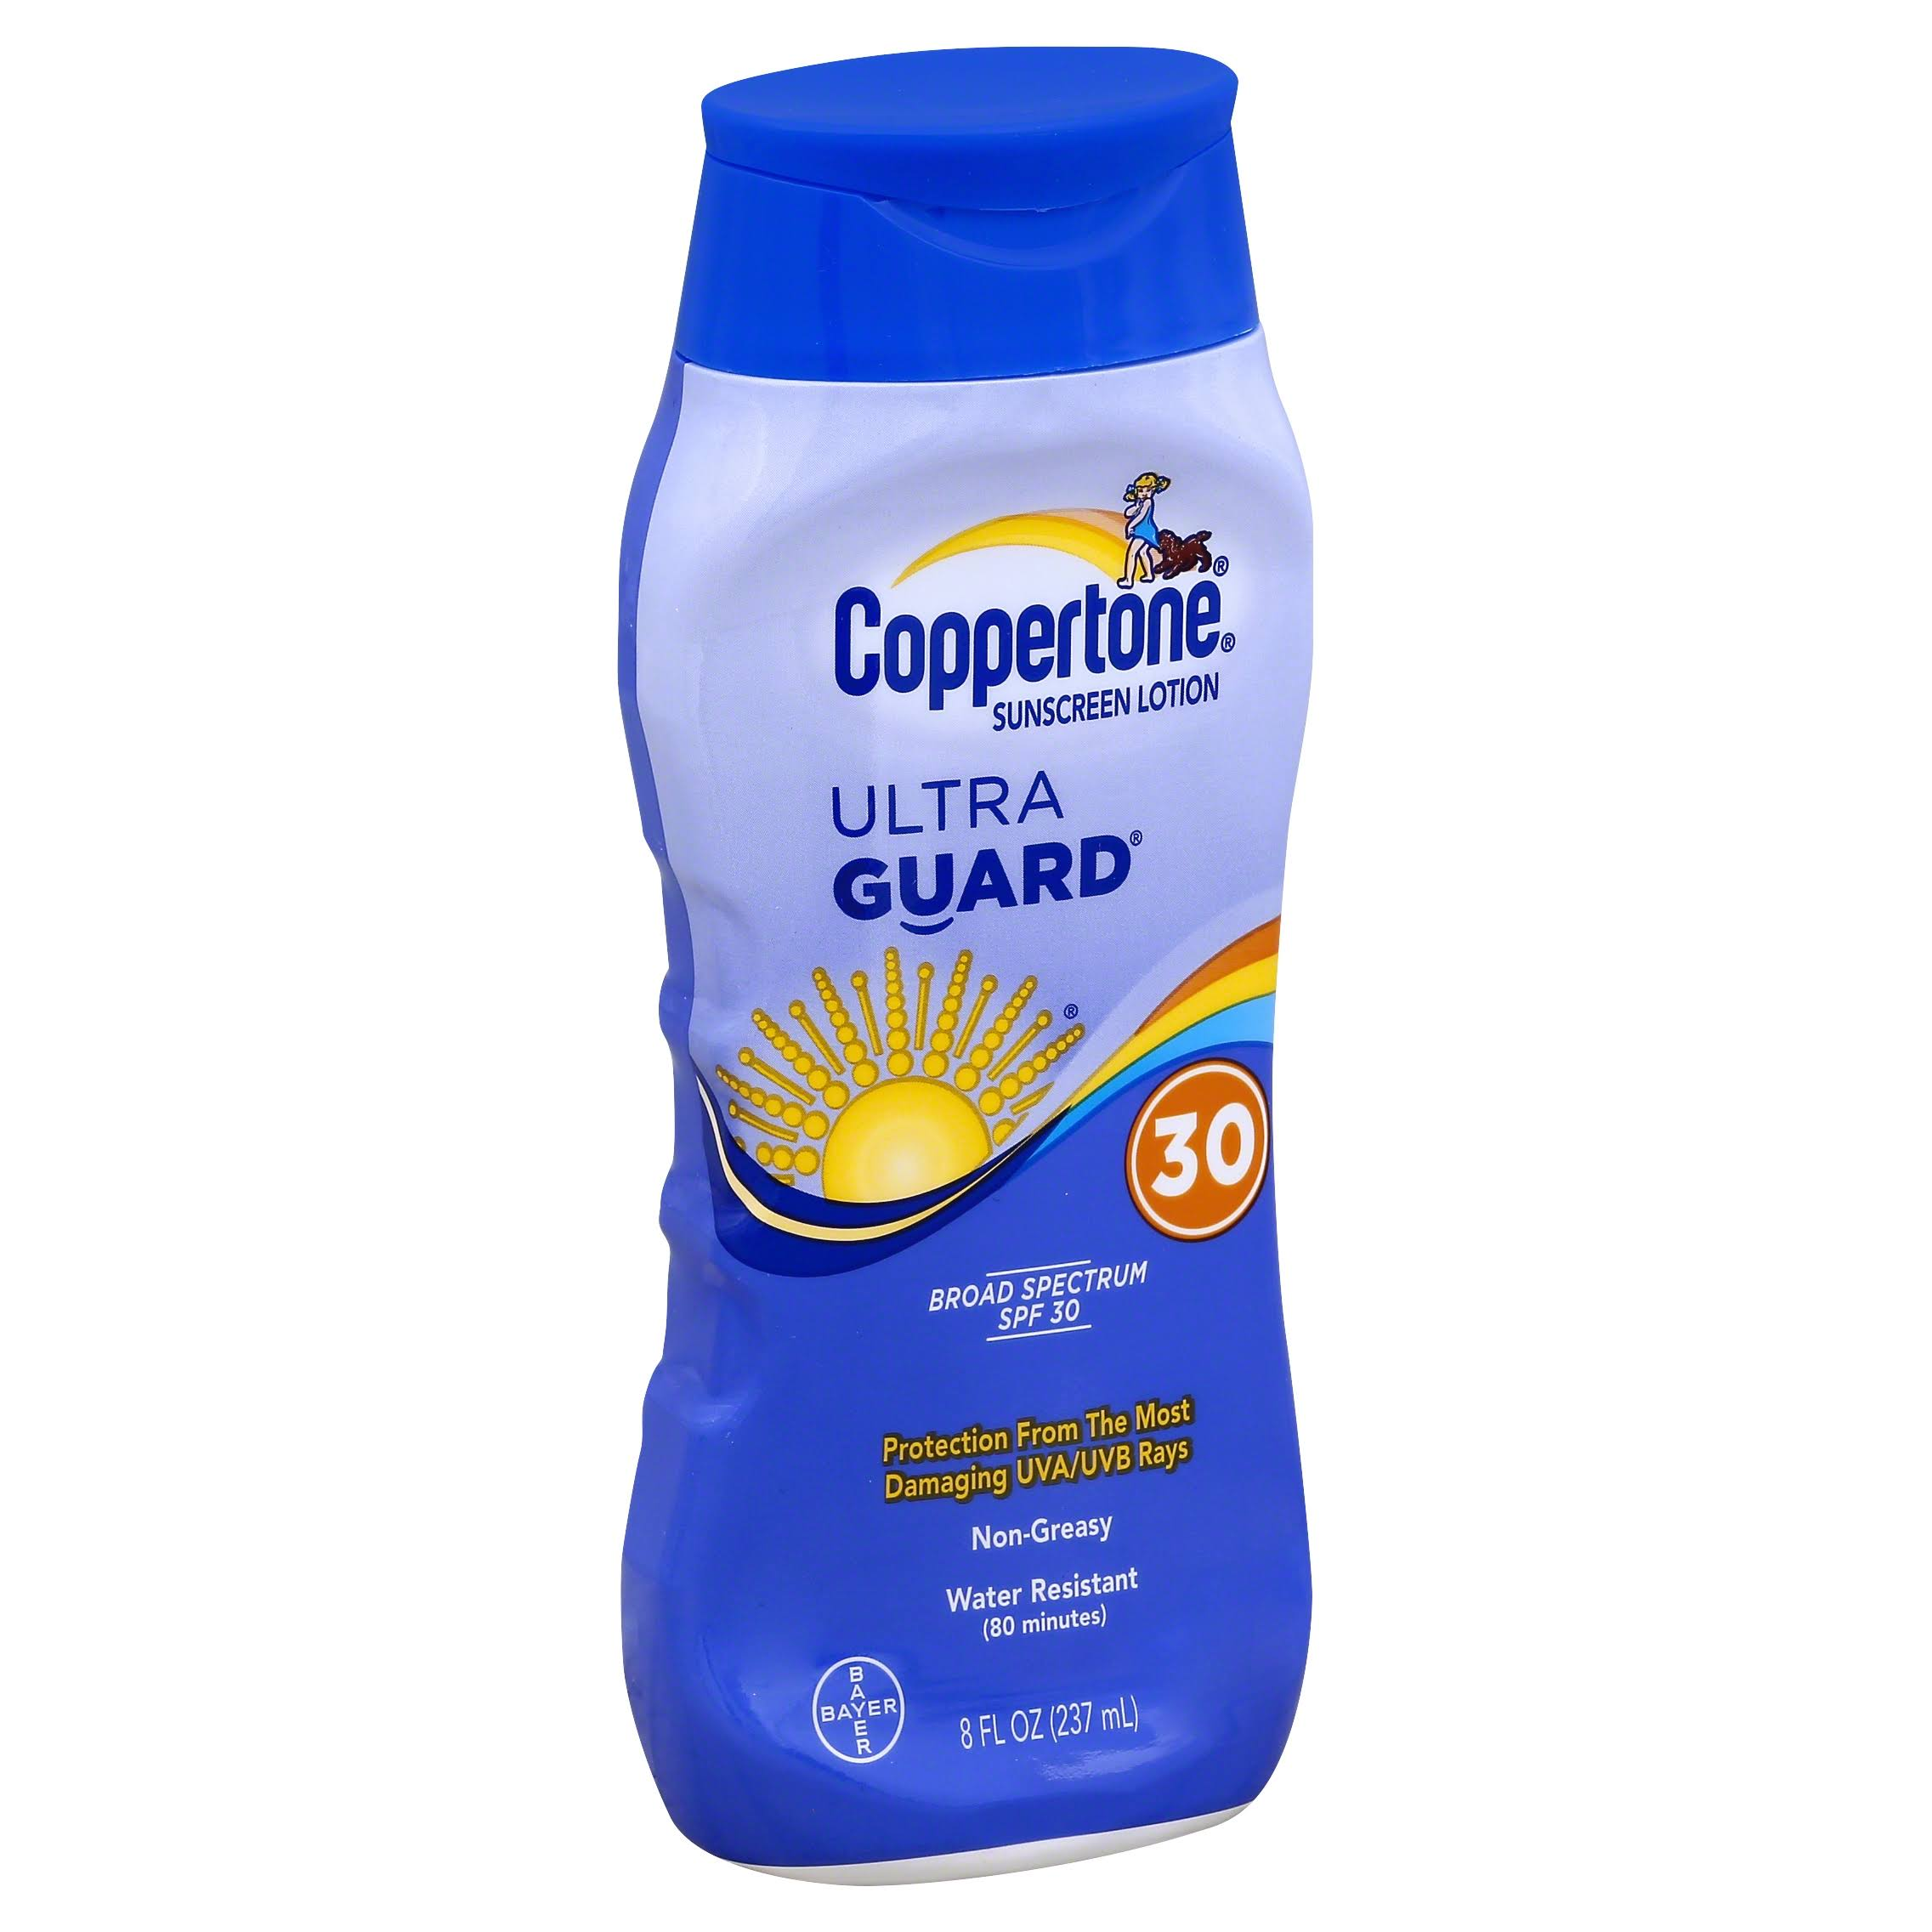 Coppertone Ultra Guard Sunscreen Lotion - SPF 30, 8oz